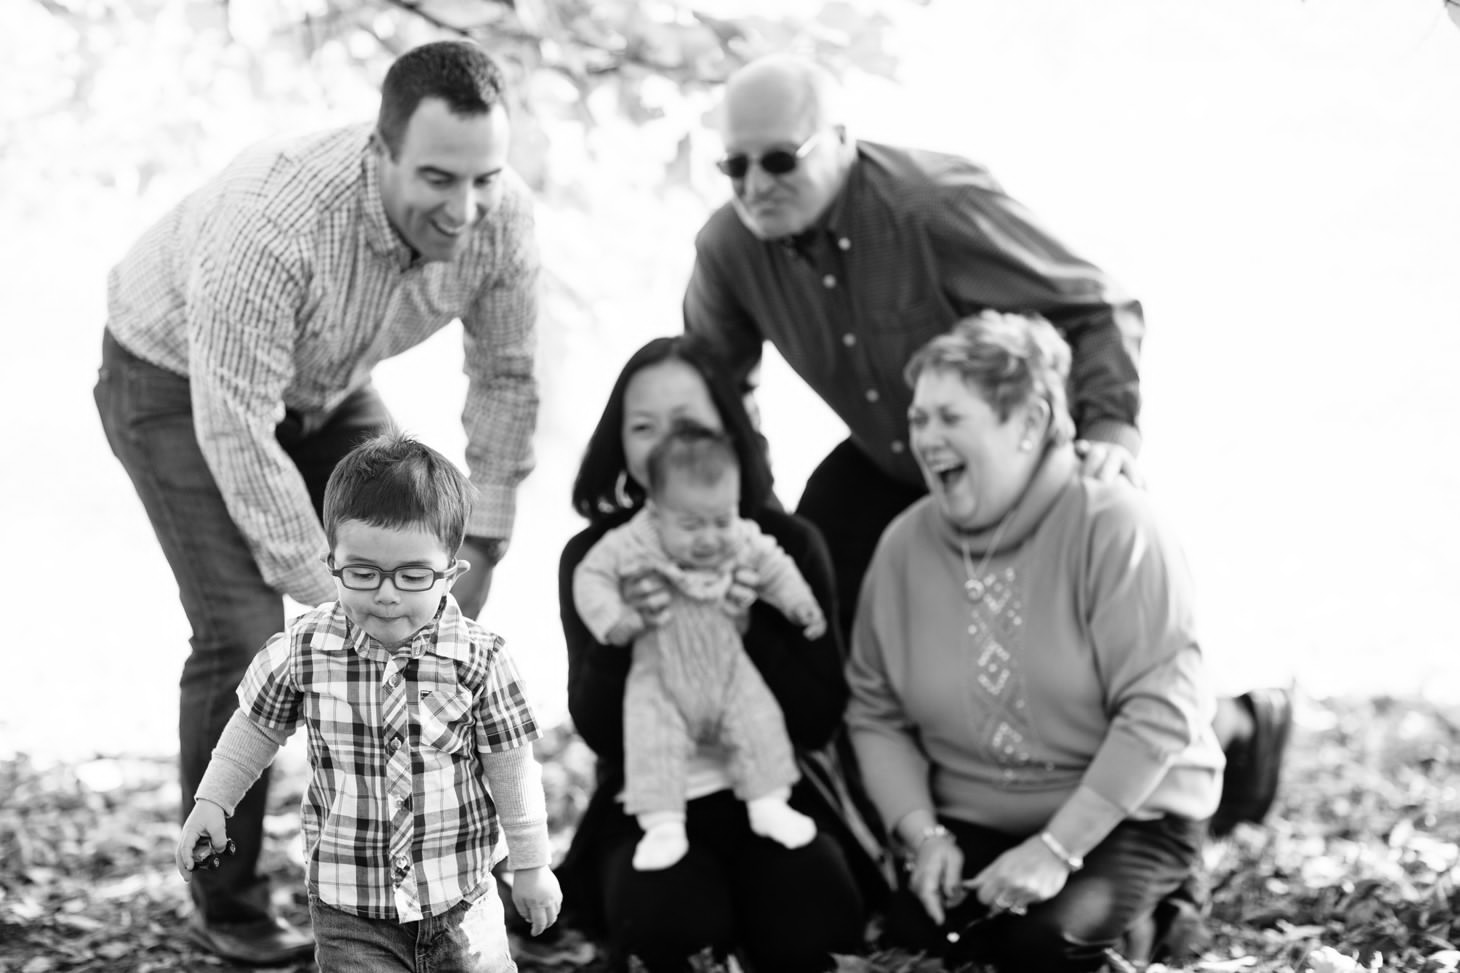 010-nyc-wedding-portrait-photographer-family-holiday-mini-session-children-fall-leaves-grandparents-smitten-chickens.jpg